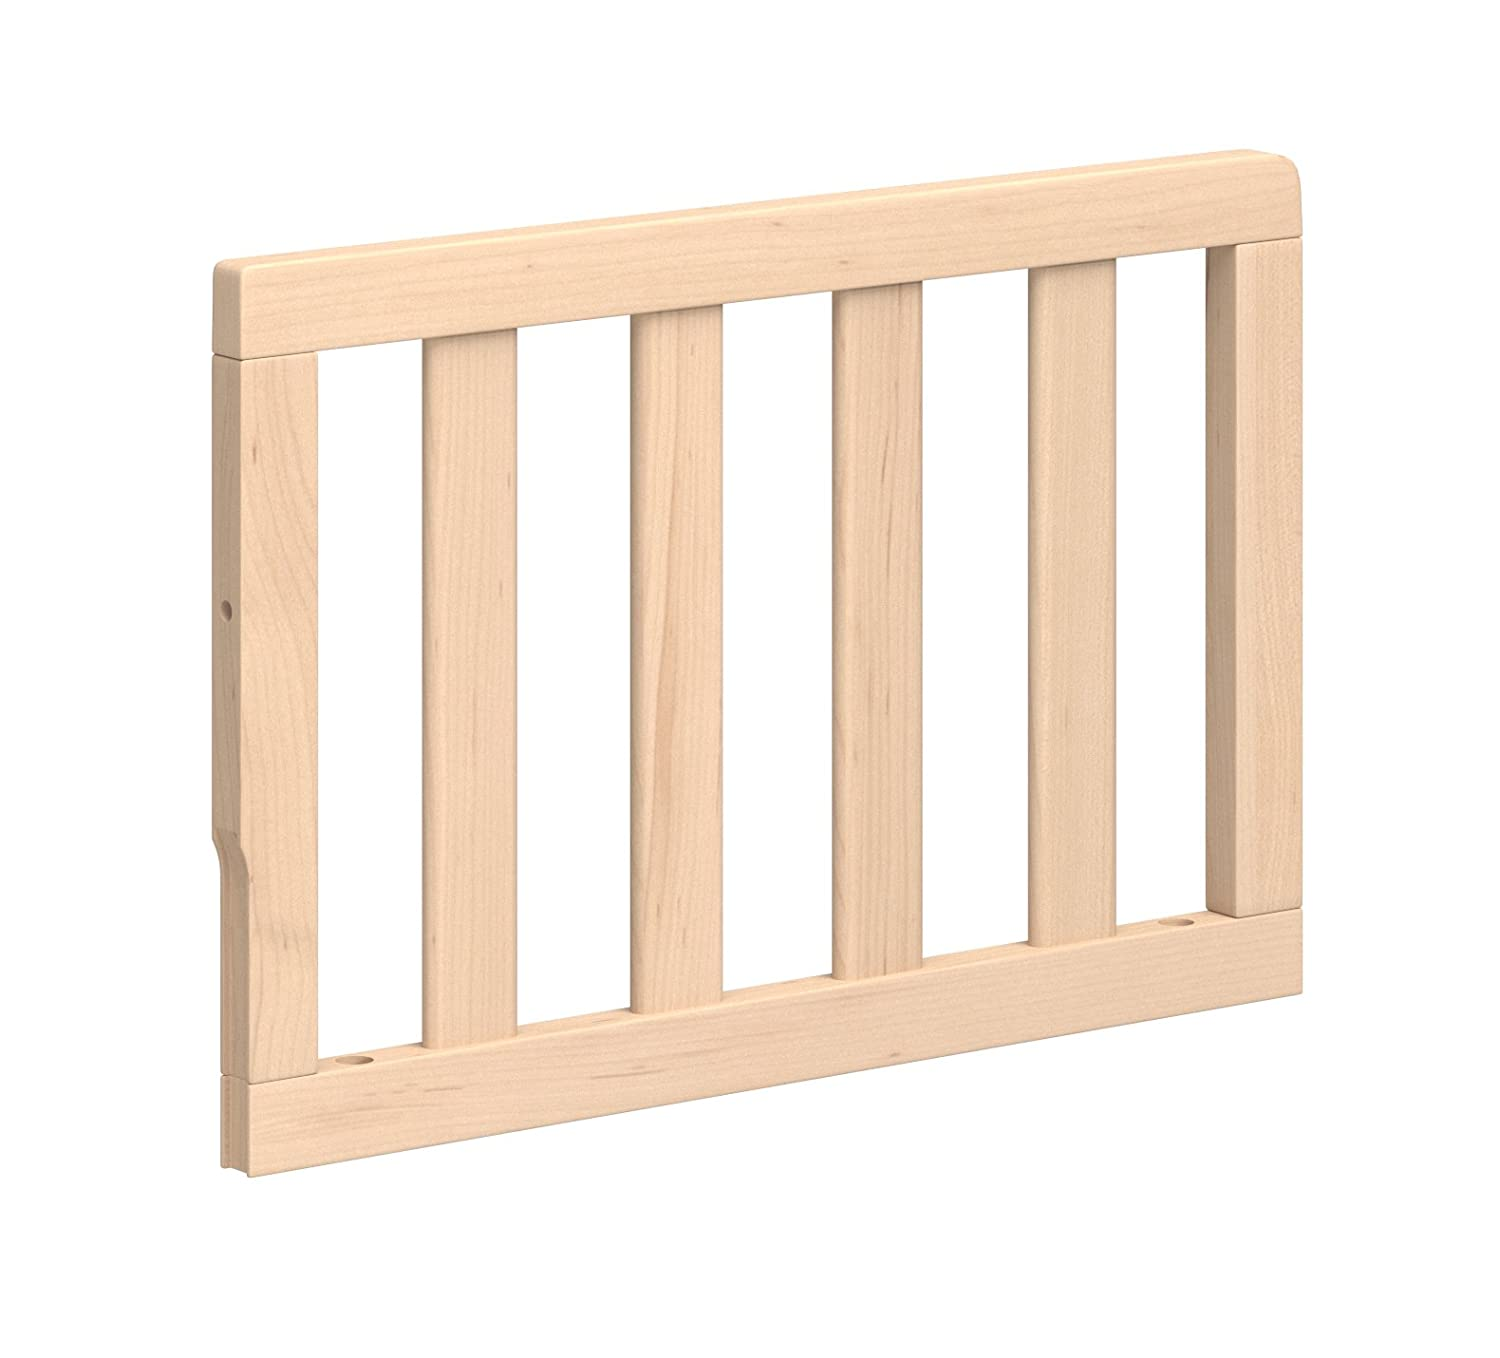 Driftwood Safety Guard Rail for Convertible Crib /& Toddler Bed 01350-307 Graco Toddler GuardRail